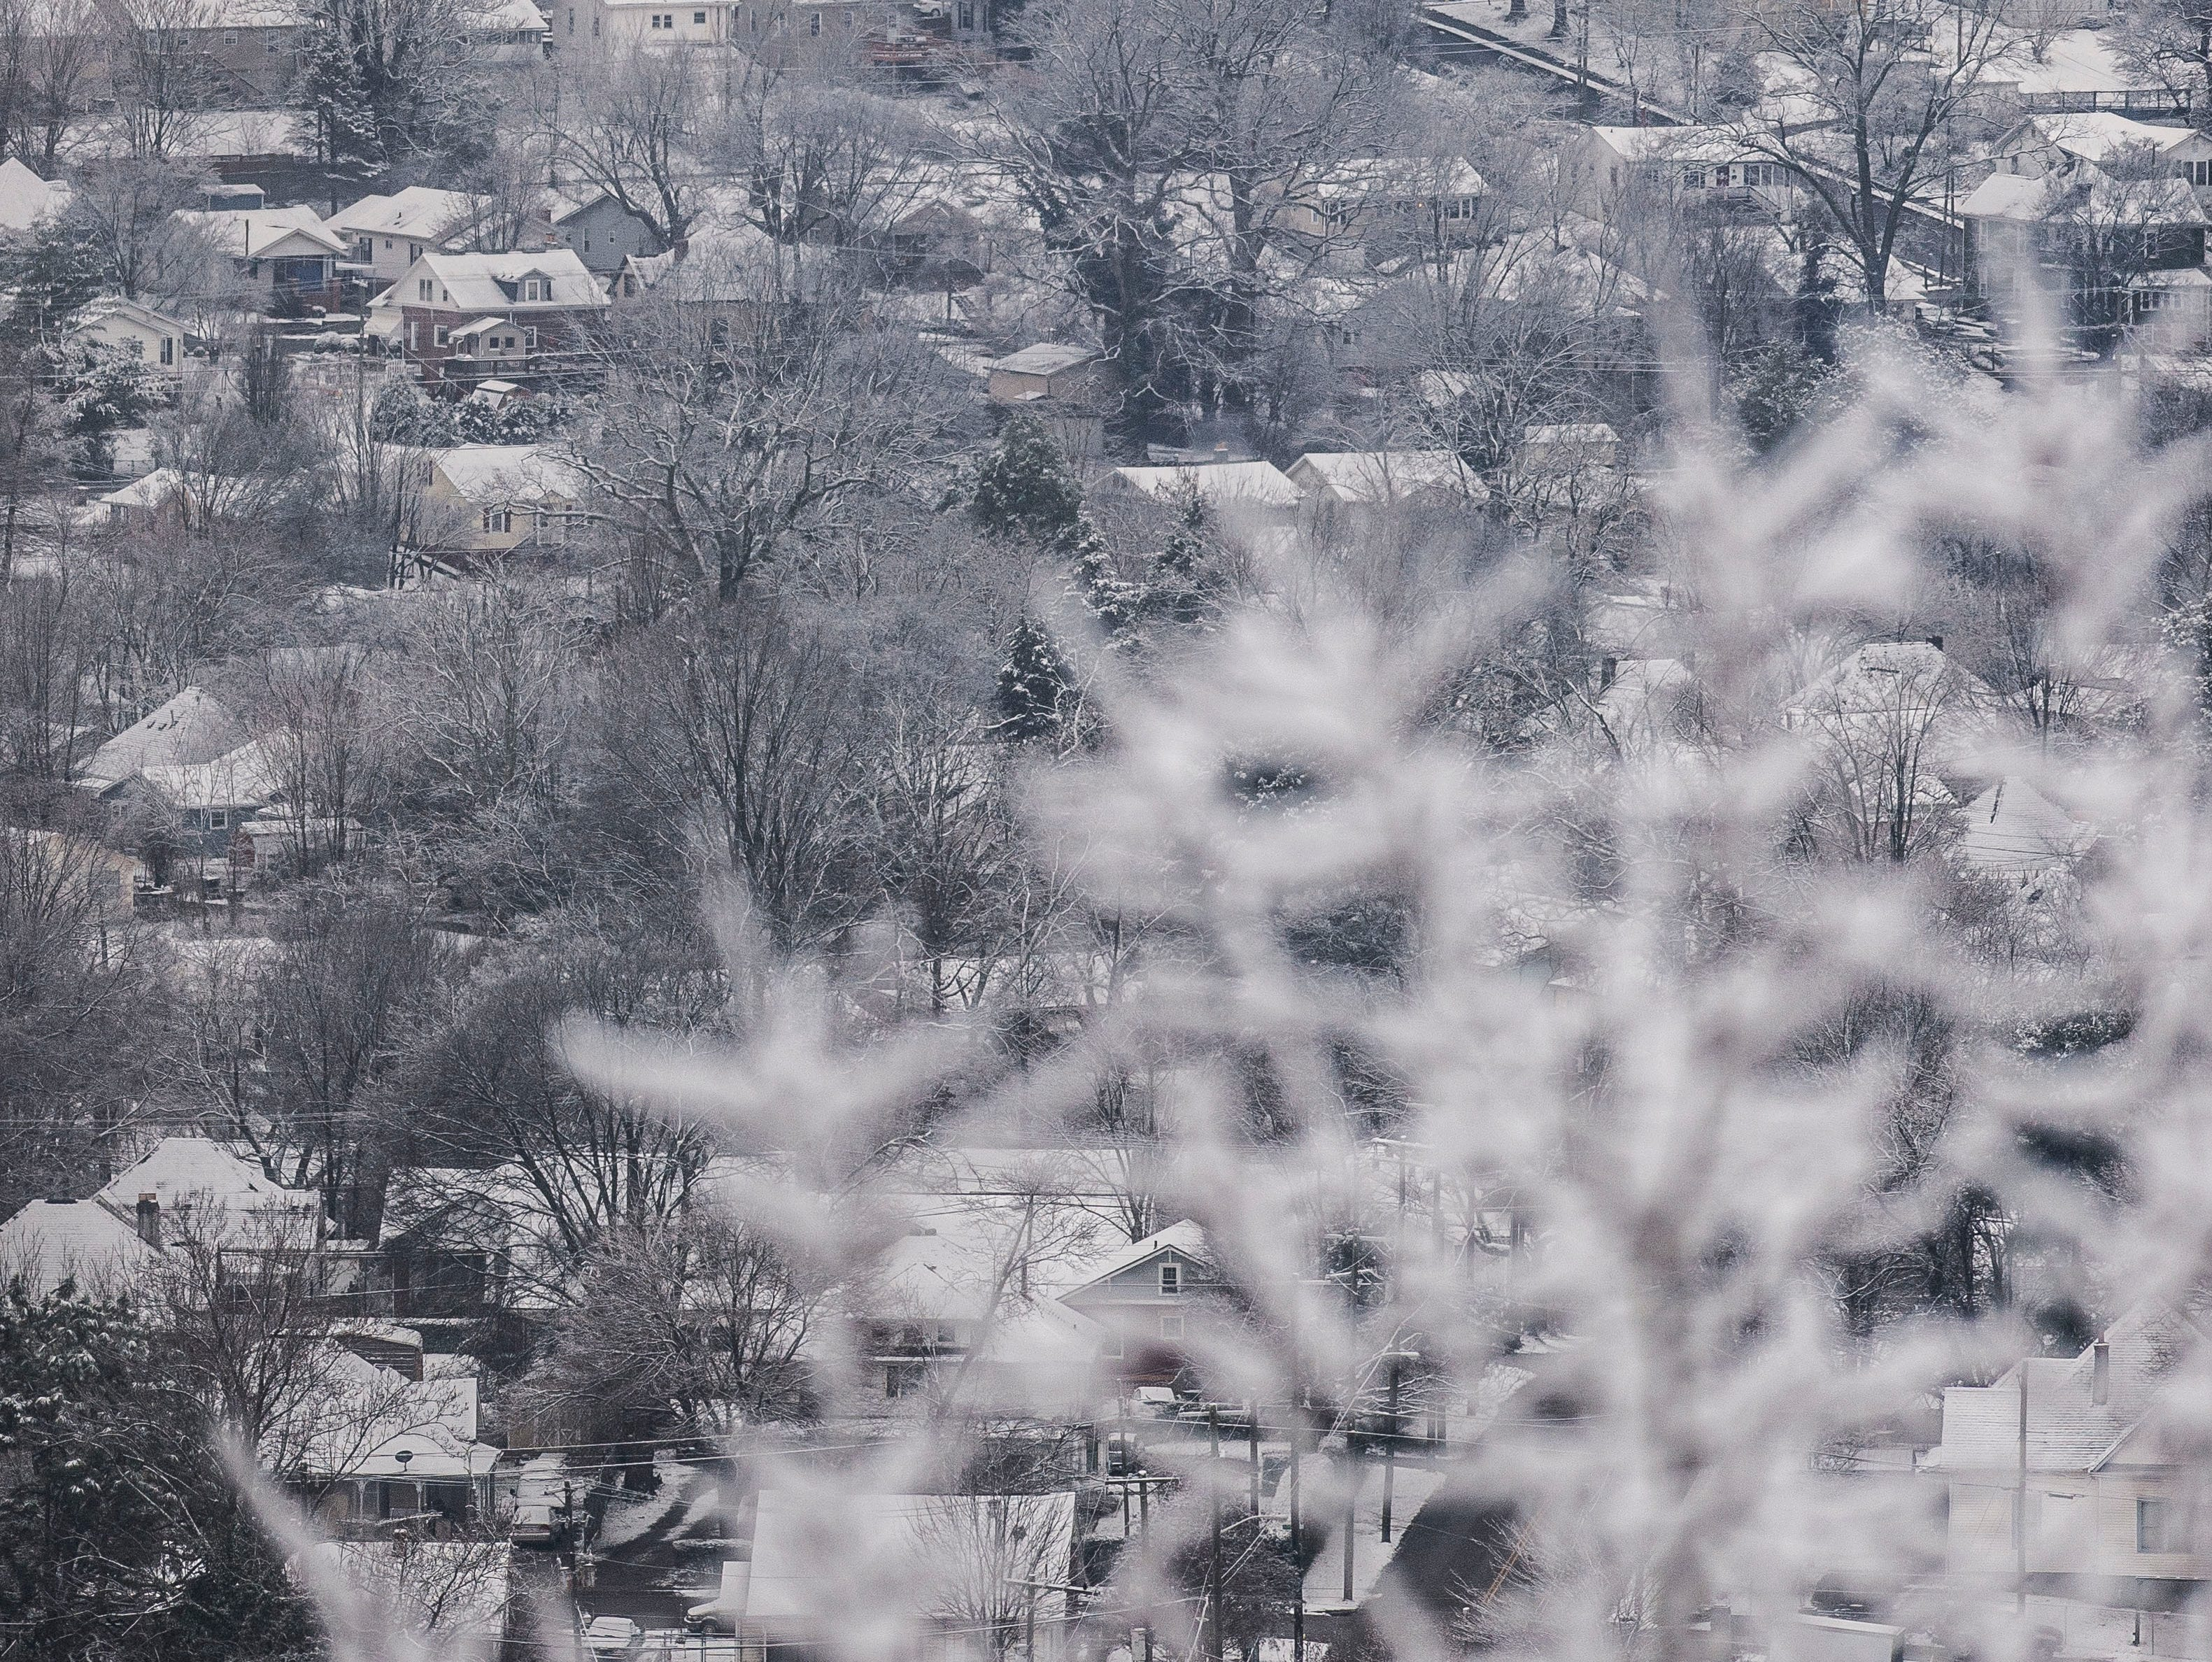 The Sunsphere is seen from Sharps Ridge in North Knoxville Tuesday, Jan 29, 2019. The Knoxville area received about an inch of snow.